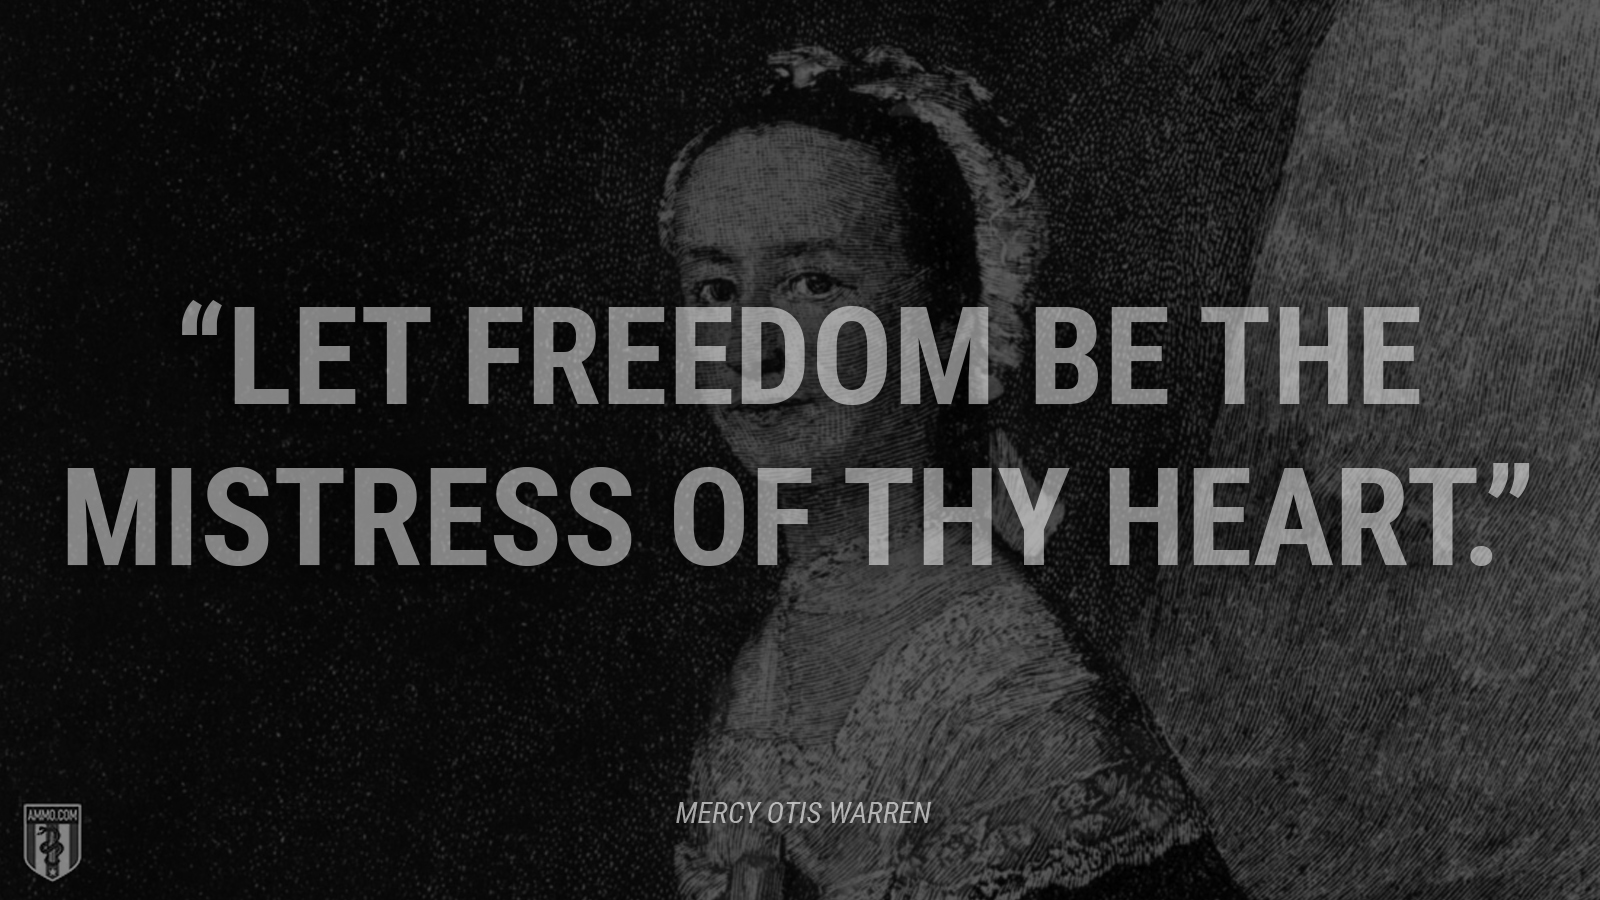 """Let freedom be the mistress of thy heart."" - Mercy Otis Warren"